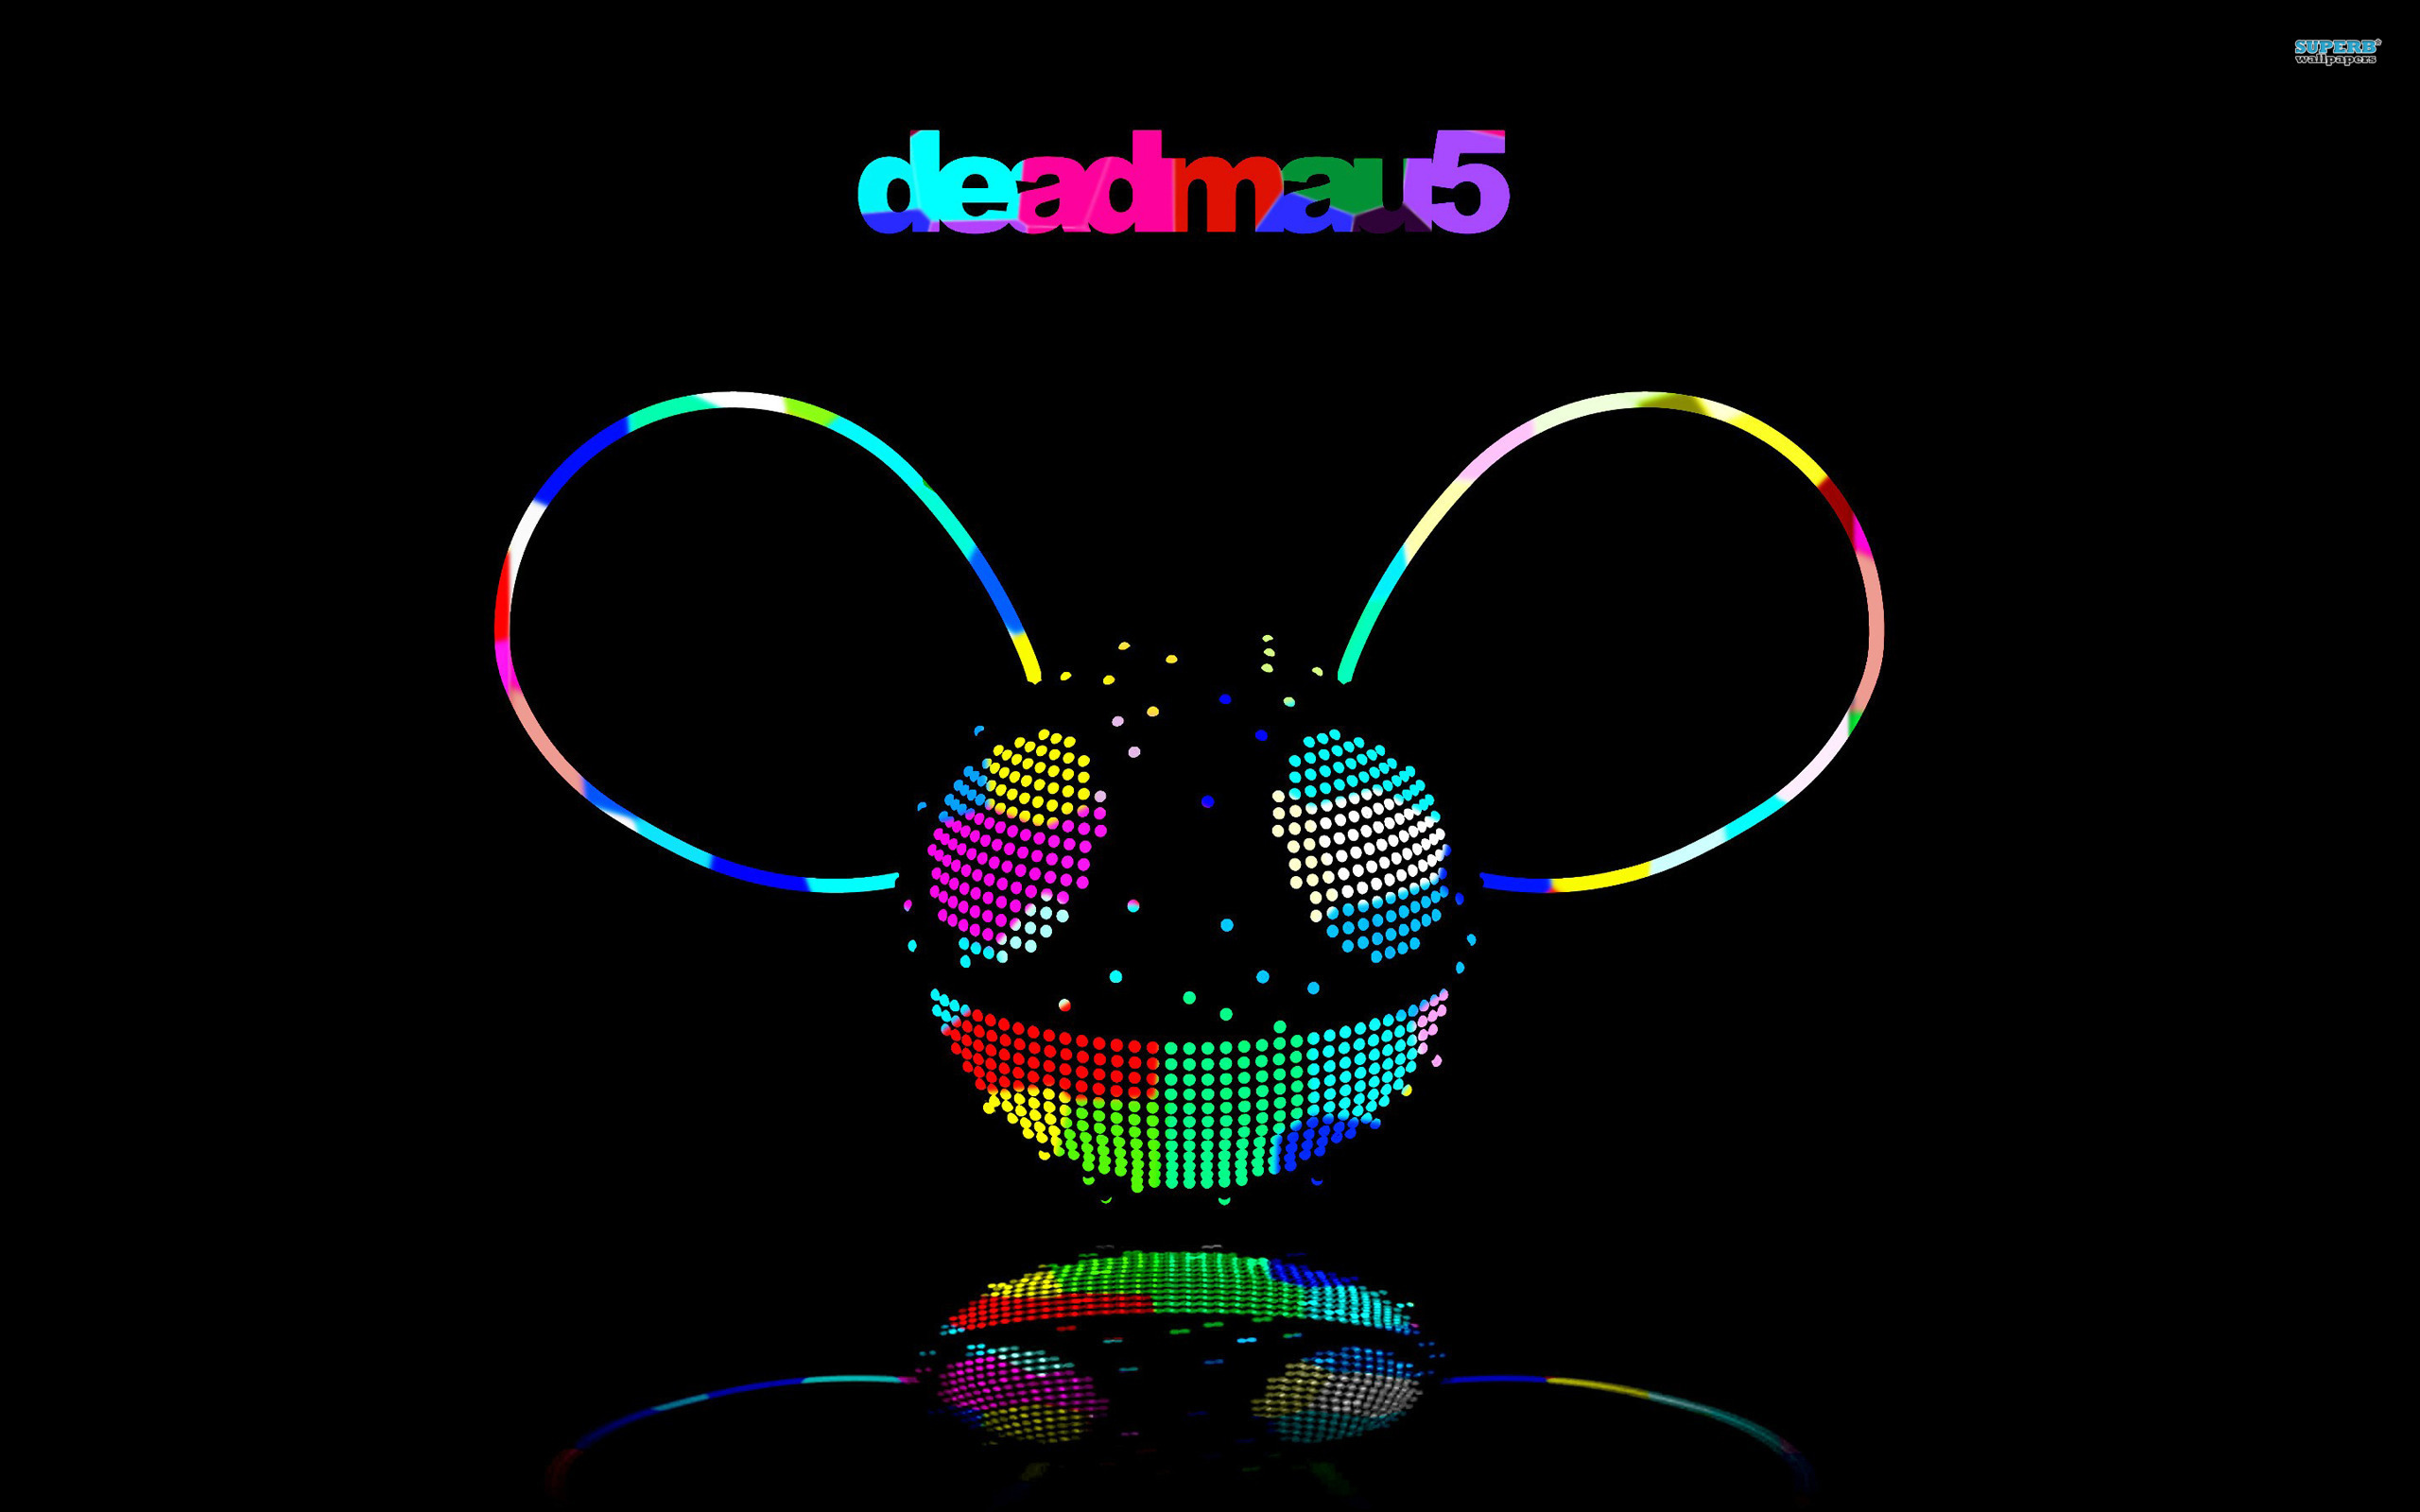 Deadmau5 wallpaper 2560x1600